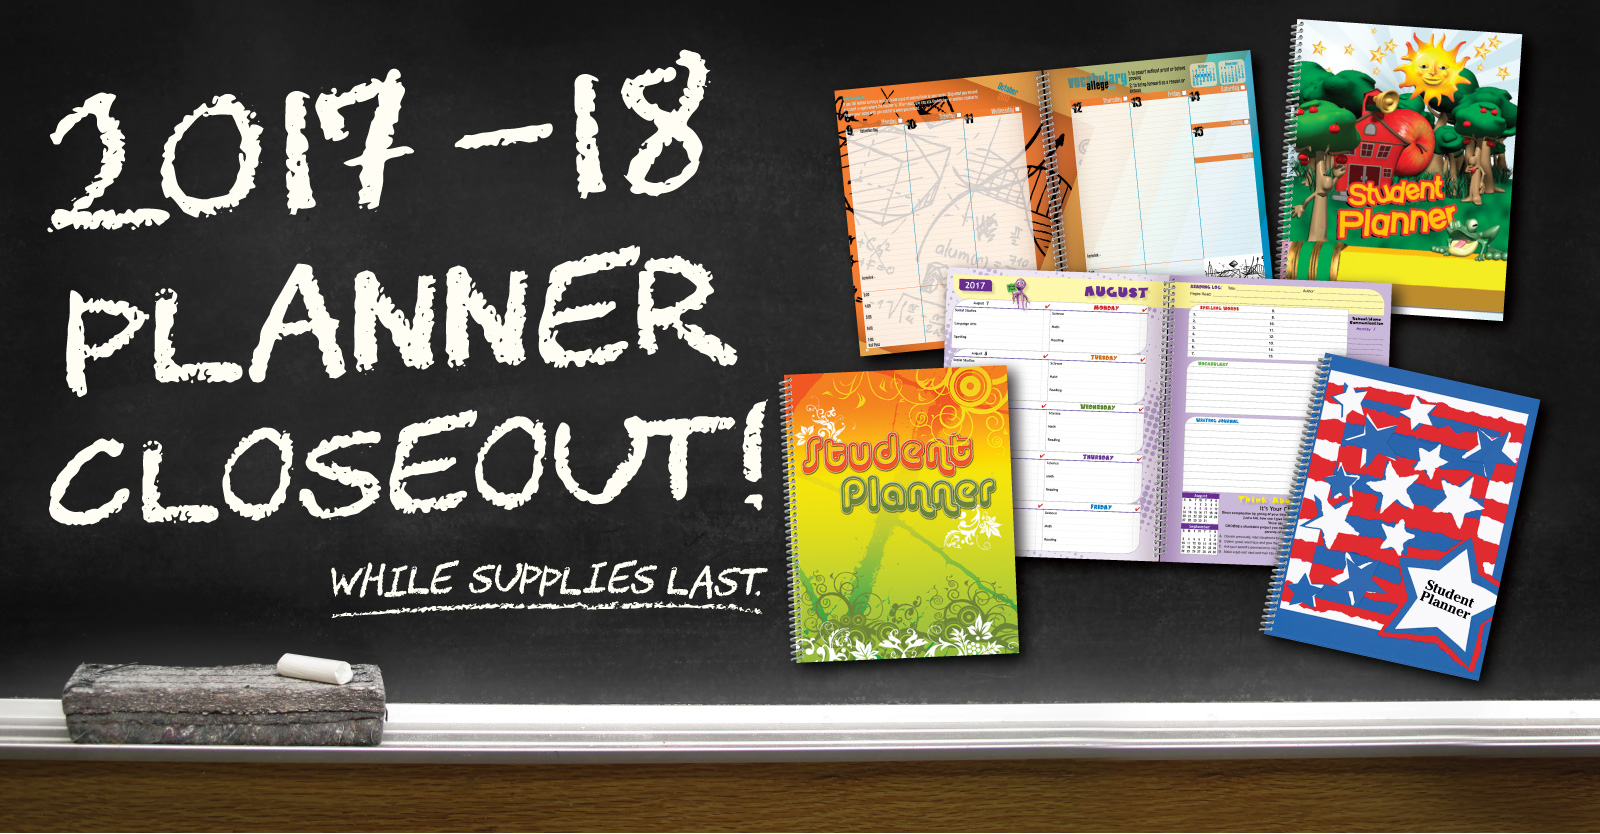 2017-18 Planner Closeout! While Supplies Last.